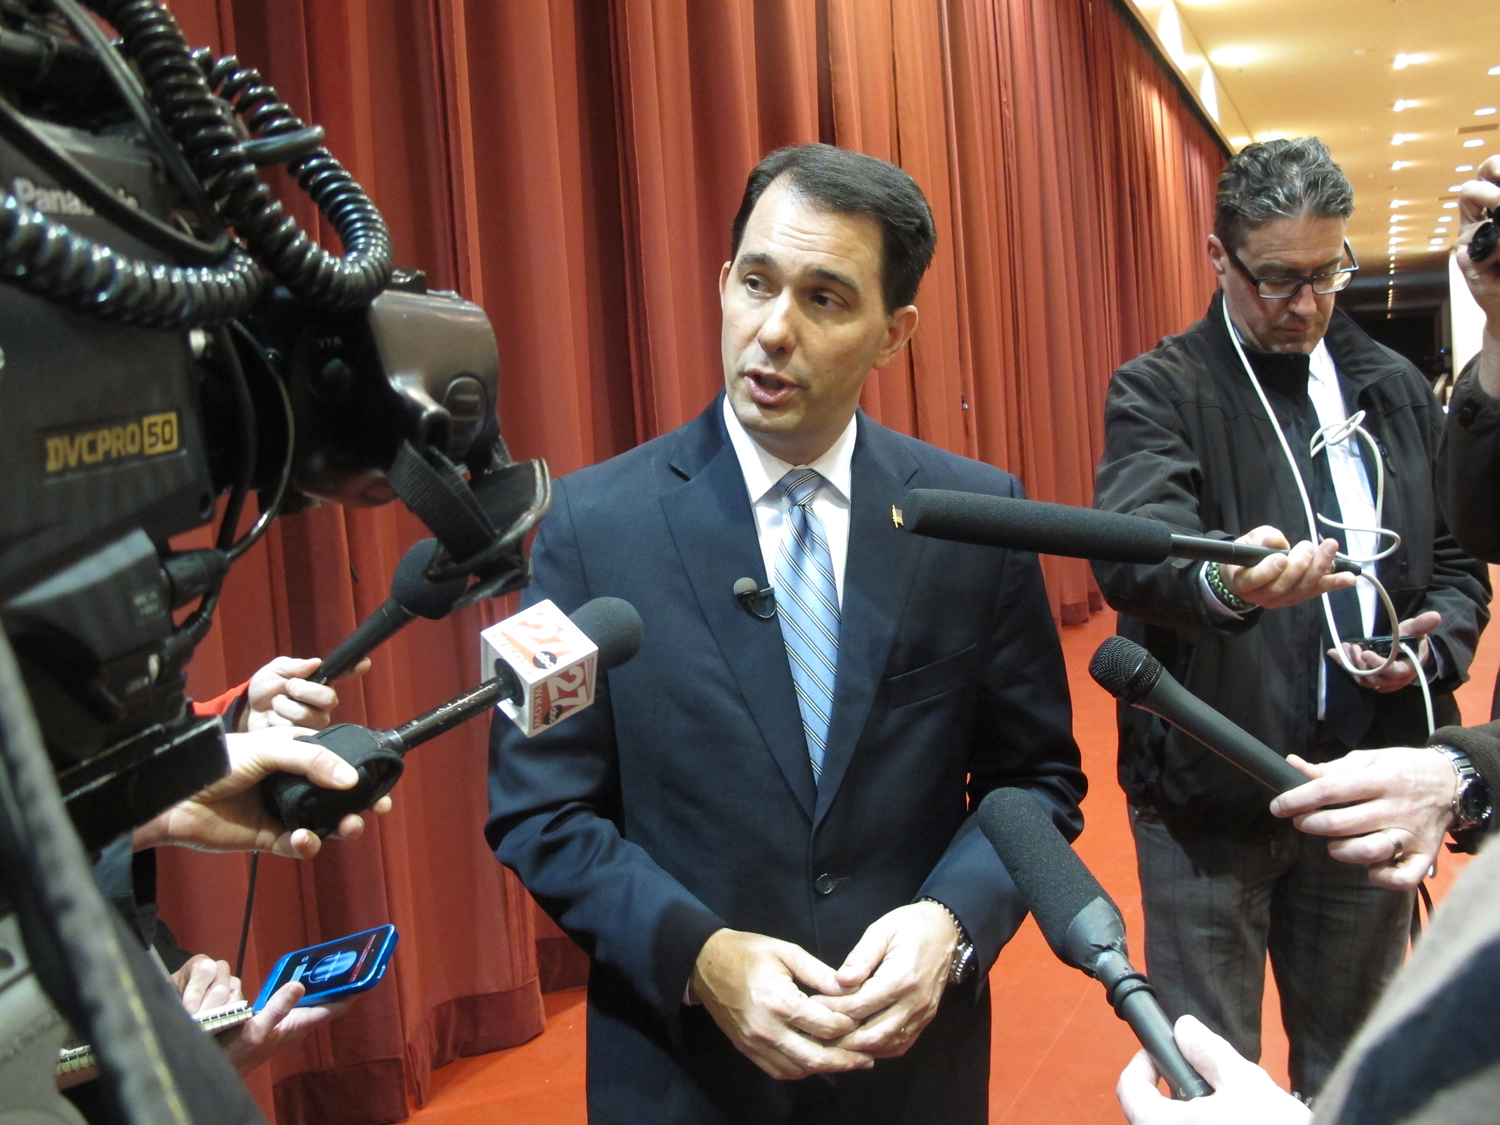 Wisconsin Gov. Scott Walker answers questions from reporters on April 16, 2014, in Madison, Wis.